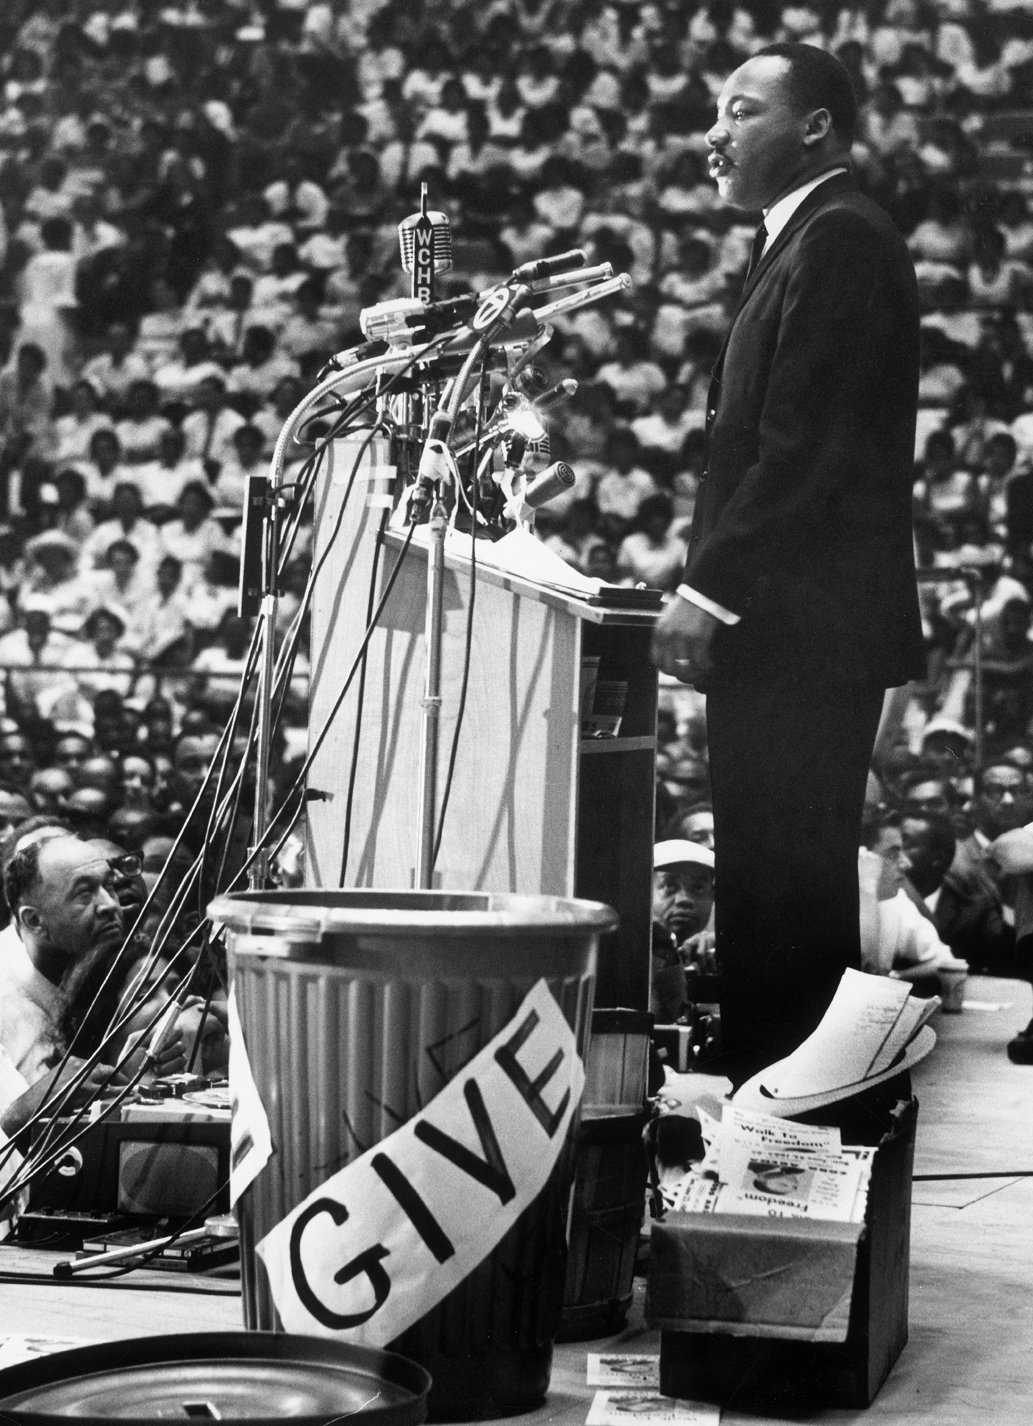 martin luther king speech at the great march on detroit june 1963 Martin luther king's i have a dream speech from the mach on martin luther king's address at march on of the same sections in detroit in june 1963.